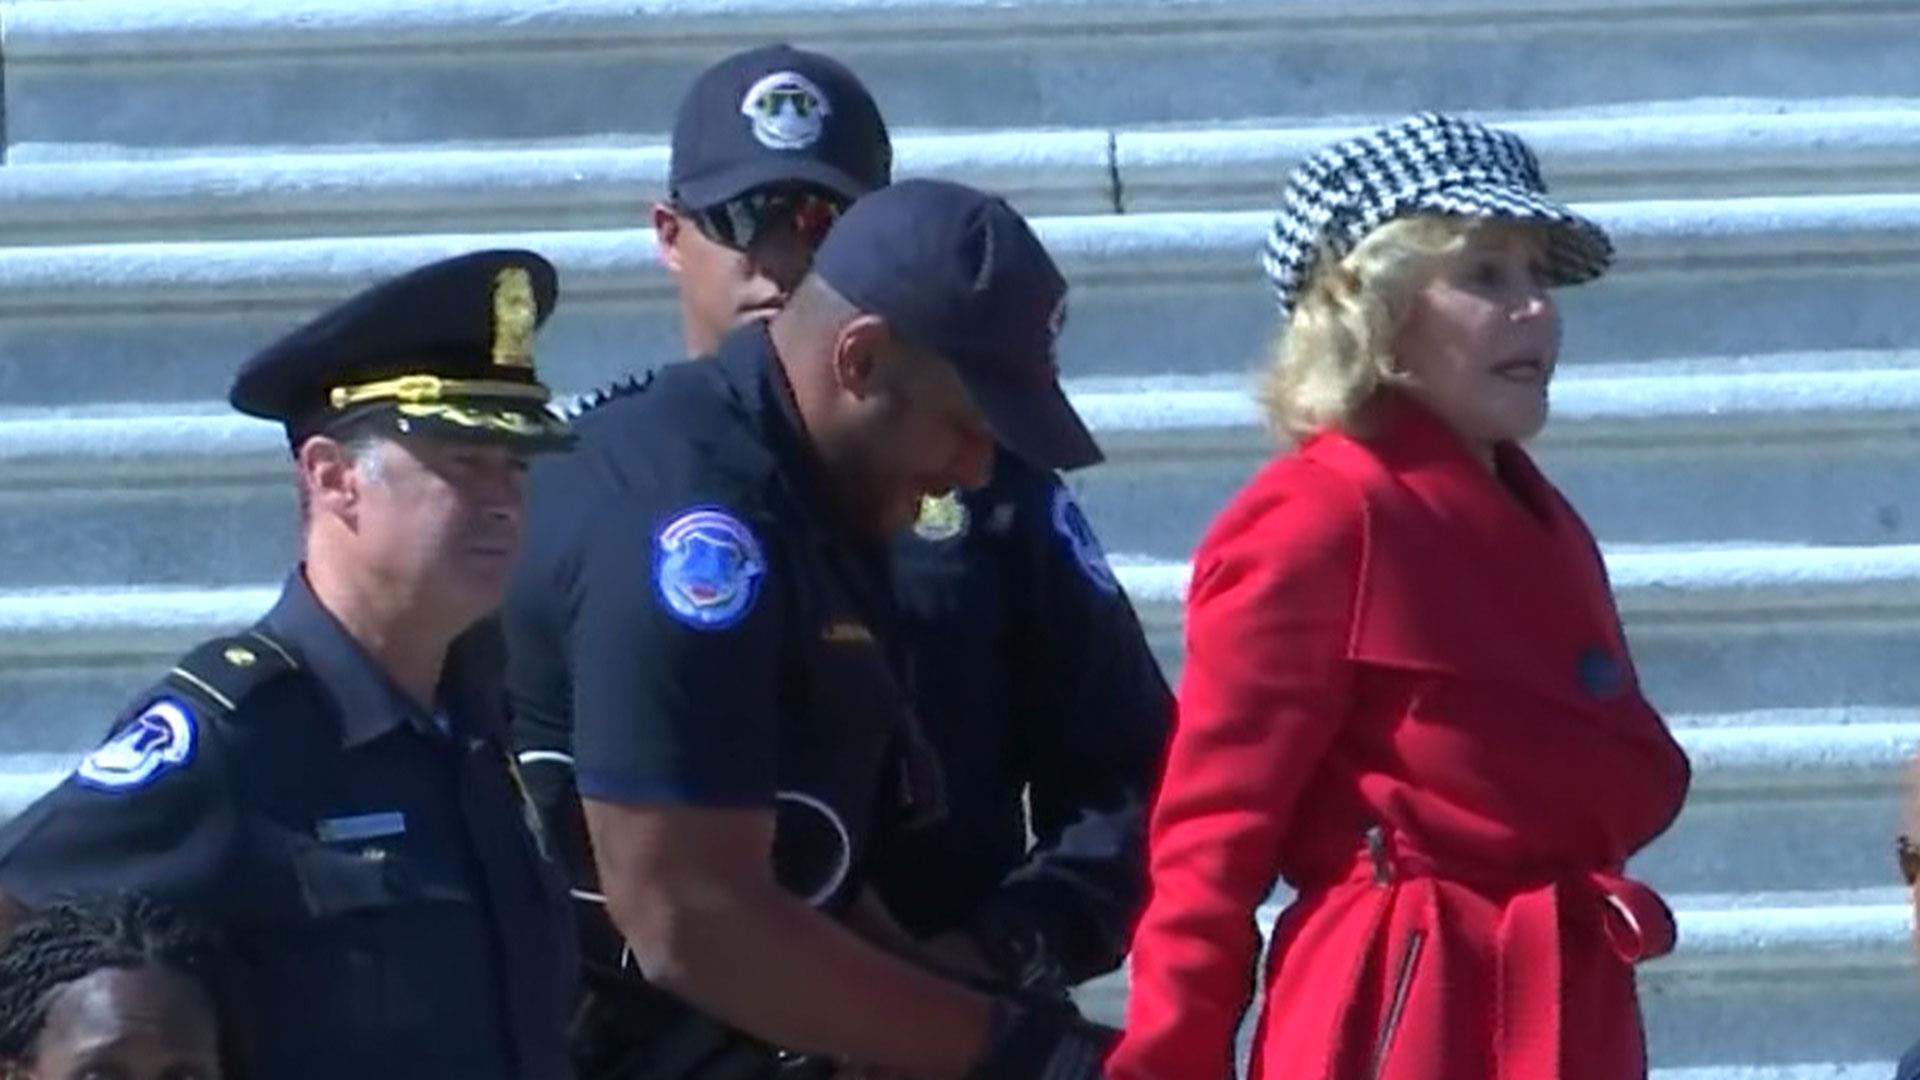 Jane Fonda arrested at U.S. Capitol during climate protest